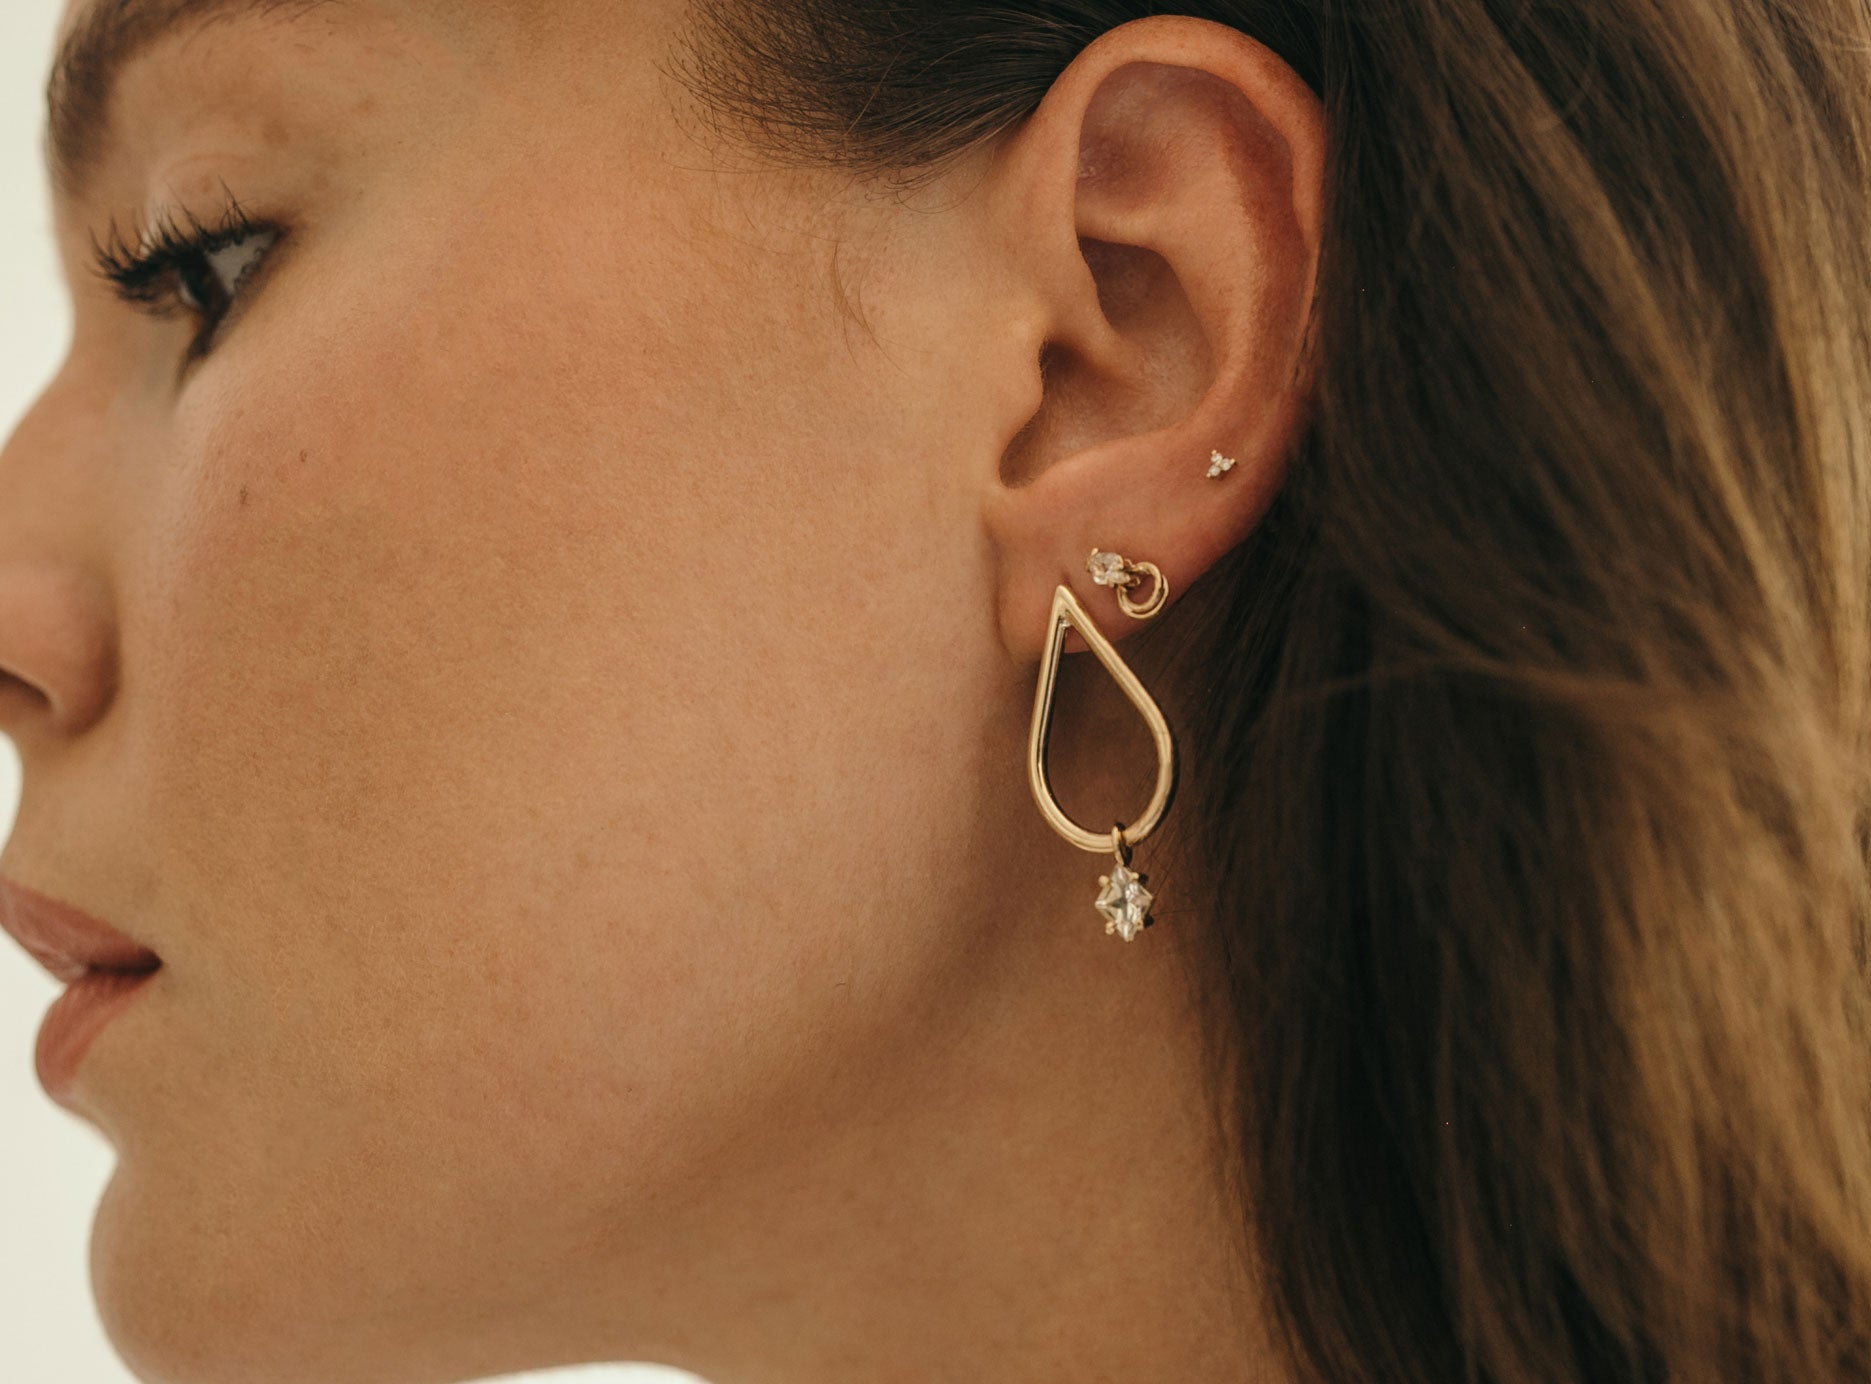 Ally wears (from left to right): Dena Sunstone Earrings, Nuna Stone Studs and Kalani Studs.